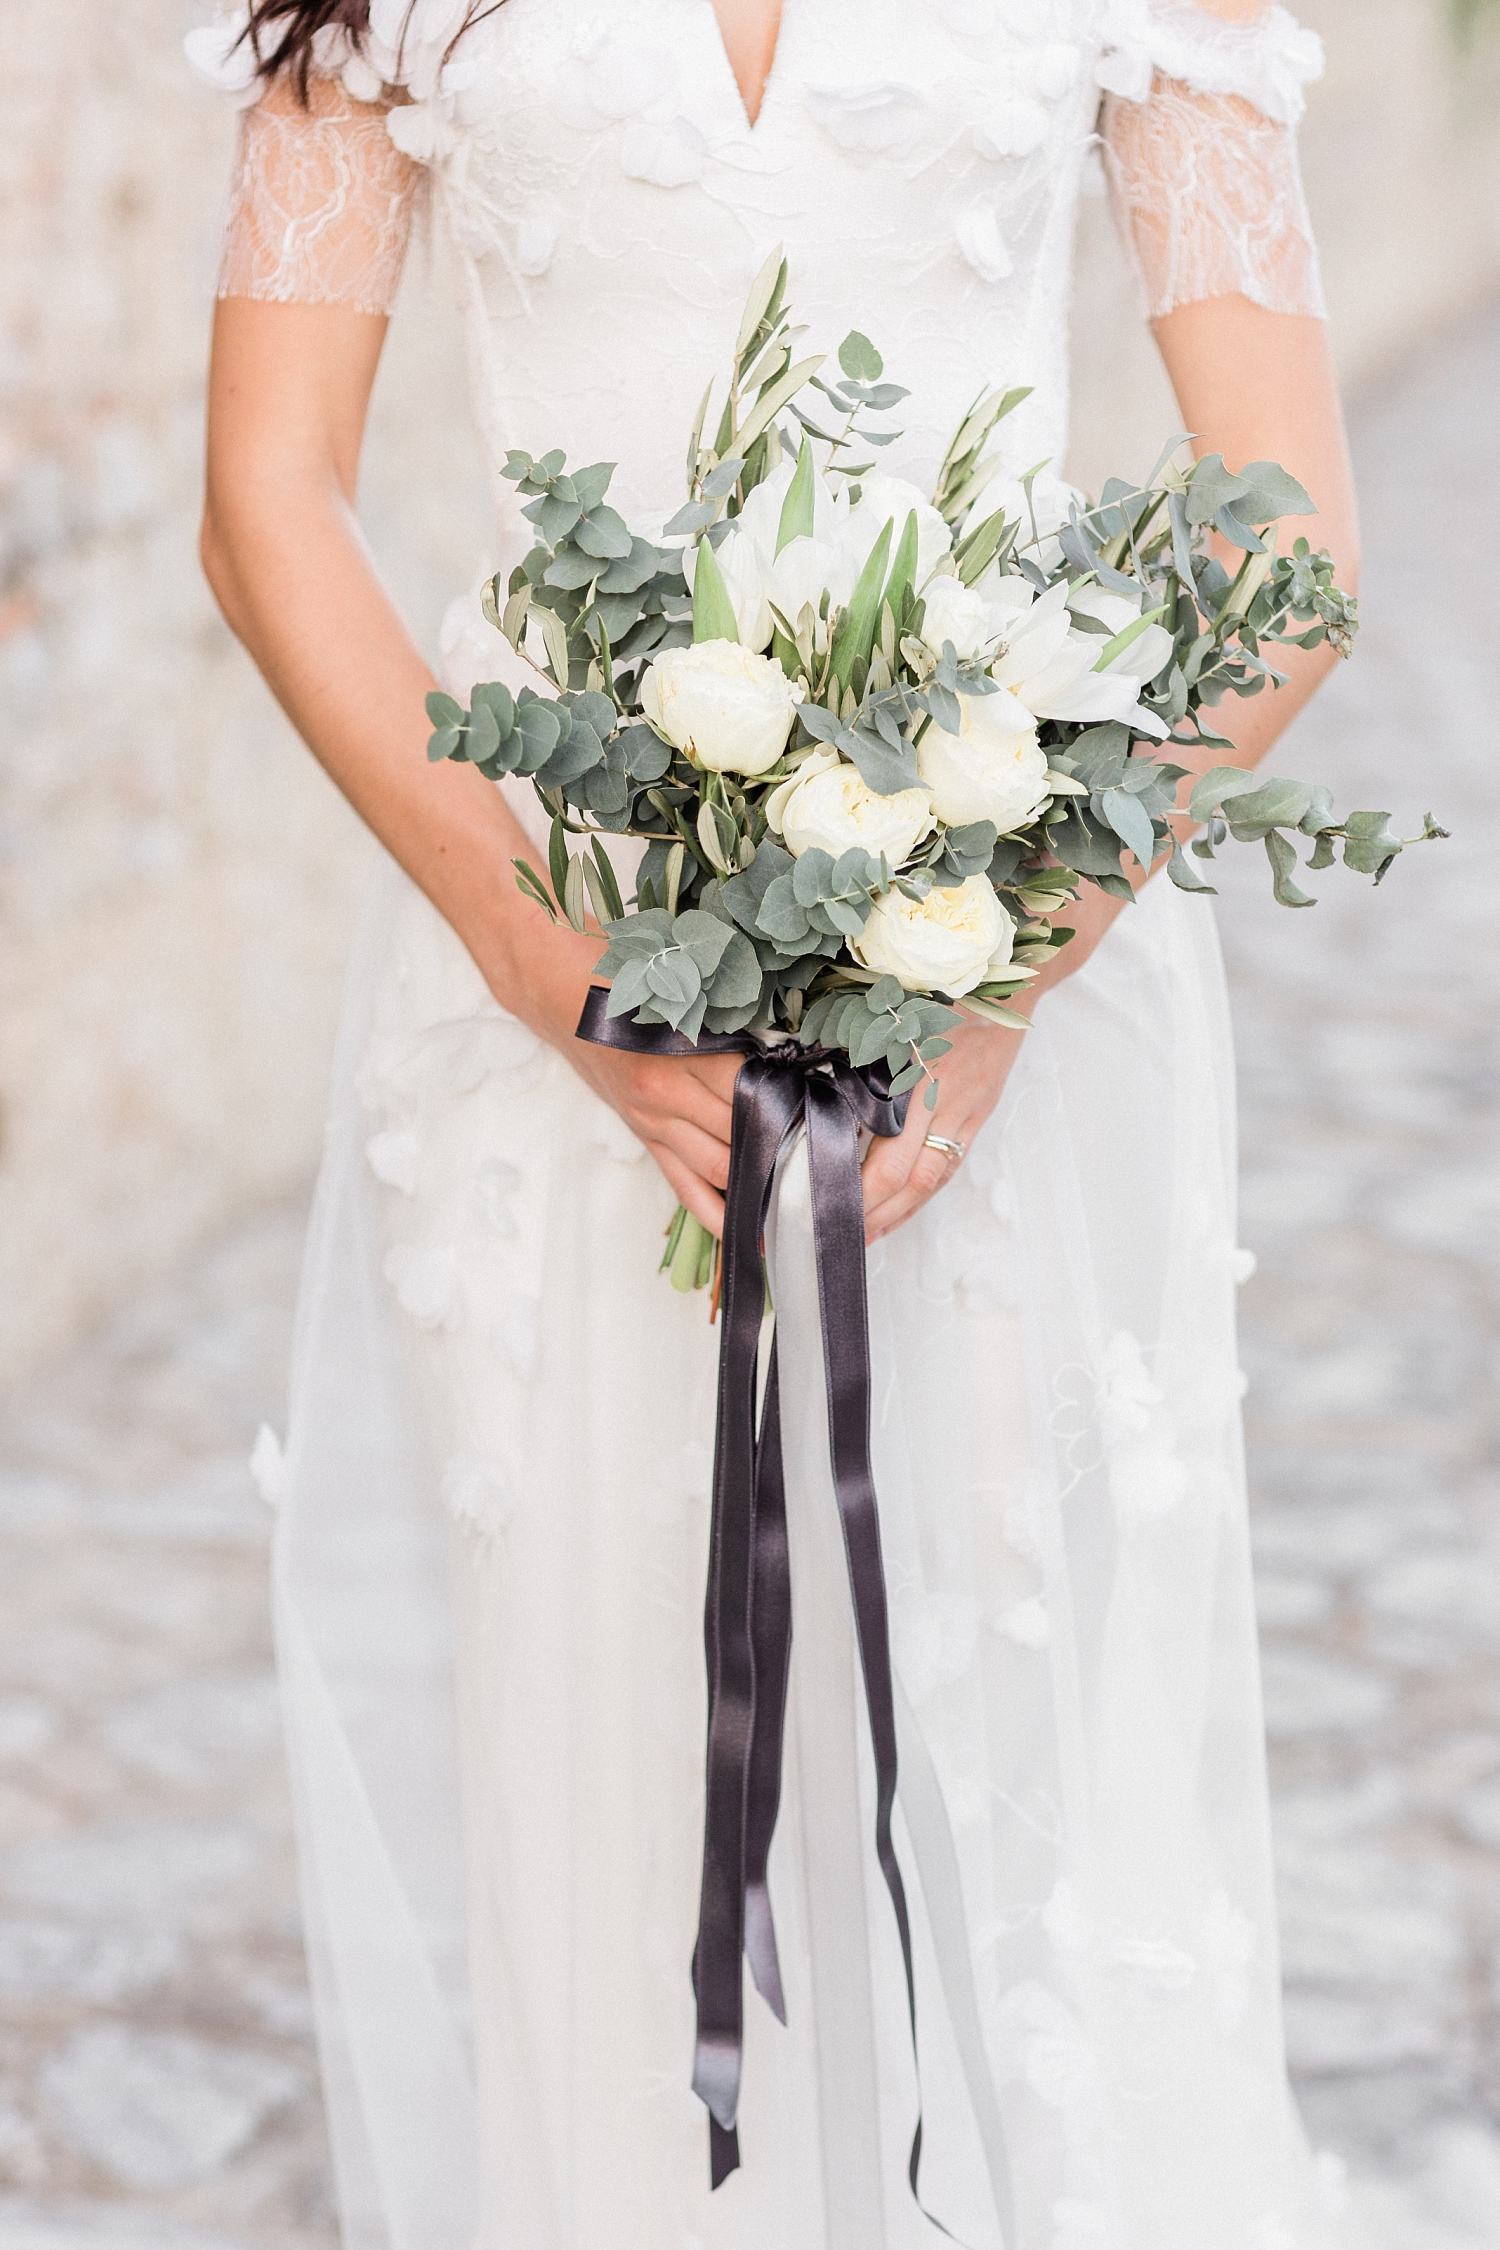 Bride holding white rose bouquet with taupe satin ribbon - photo by Jurgita Lukos Photography